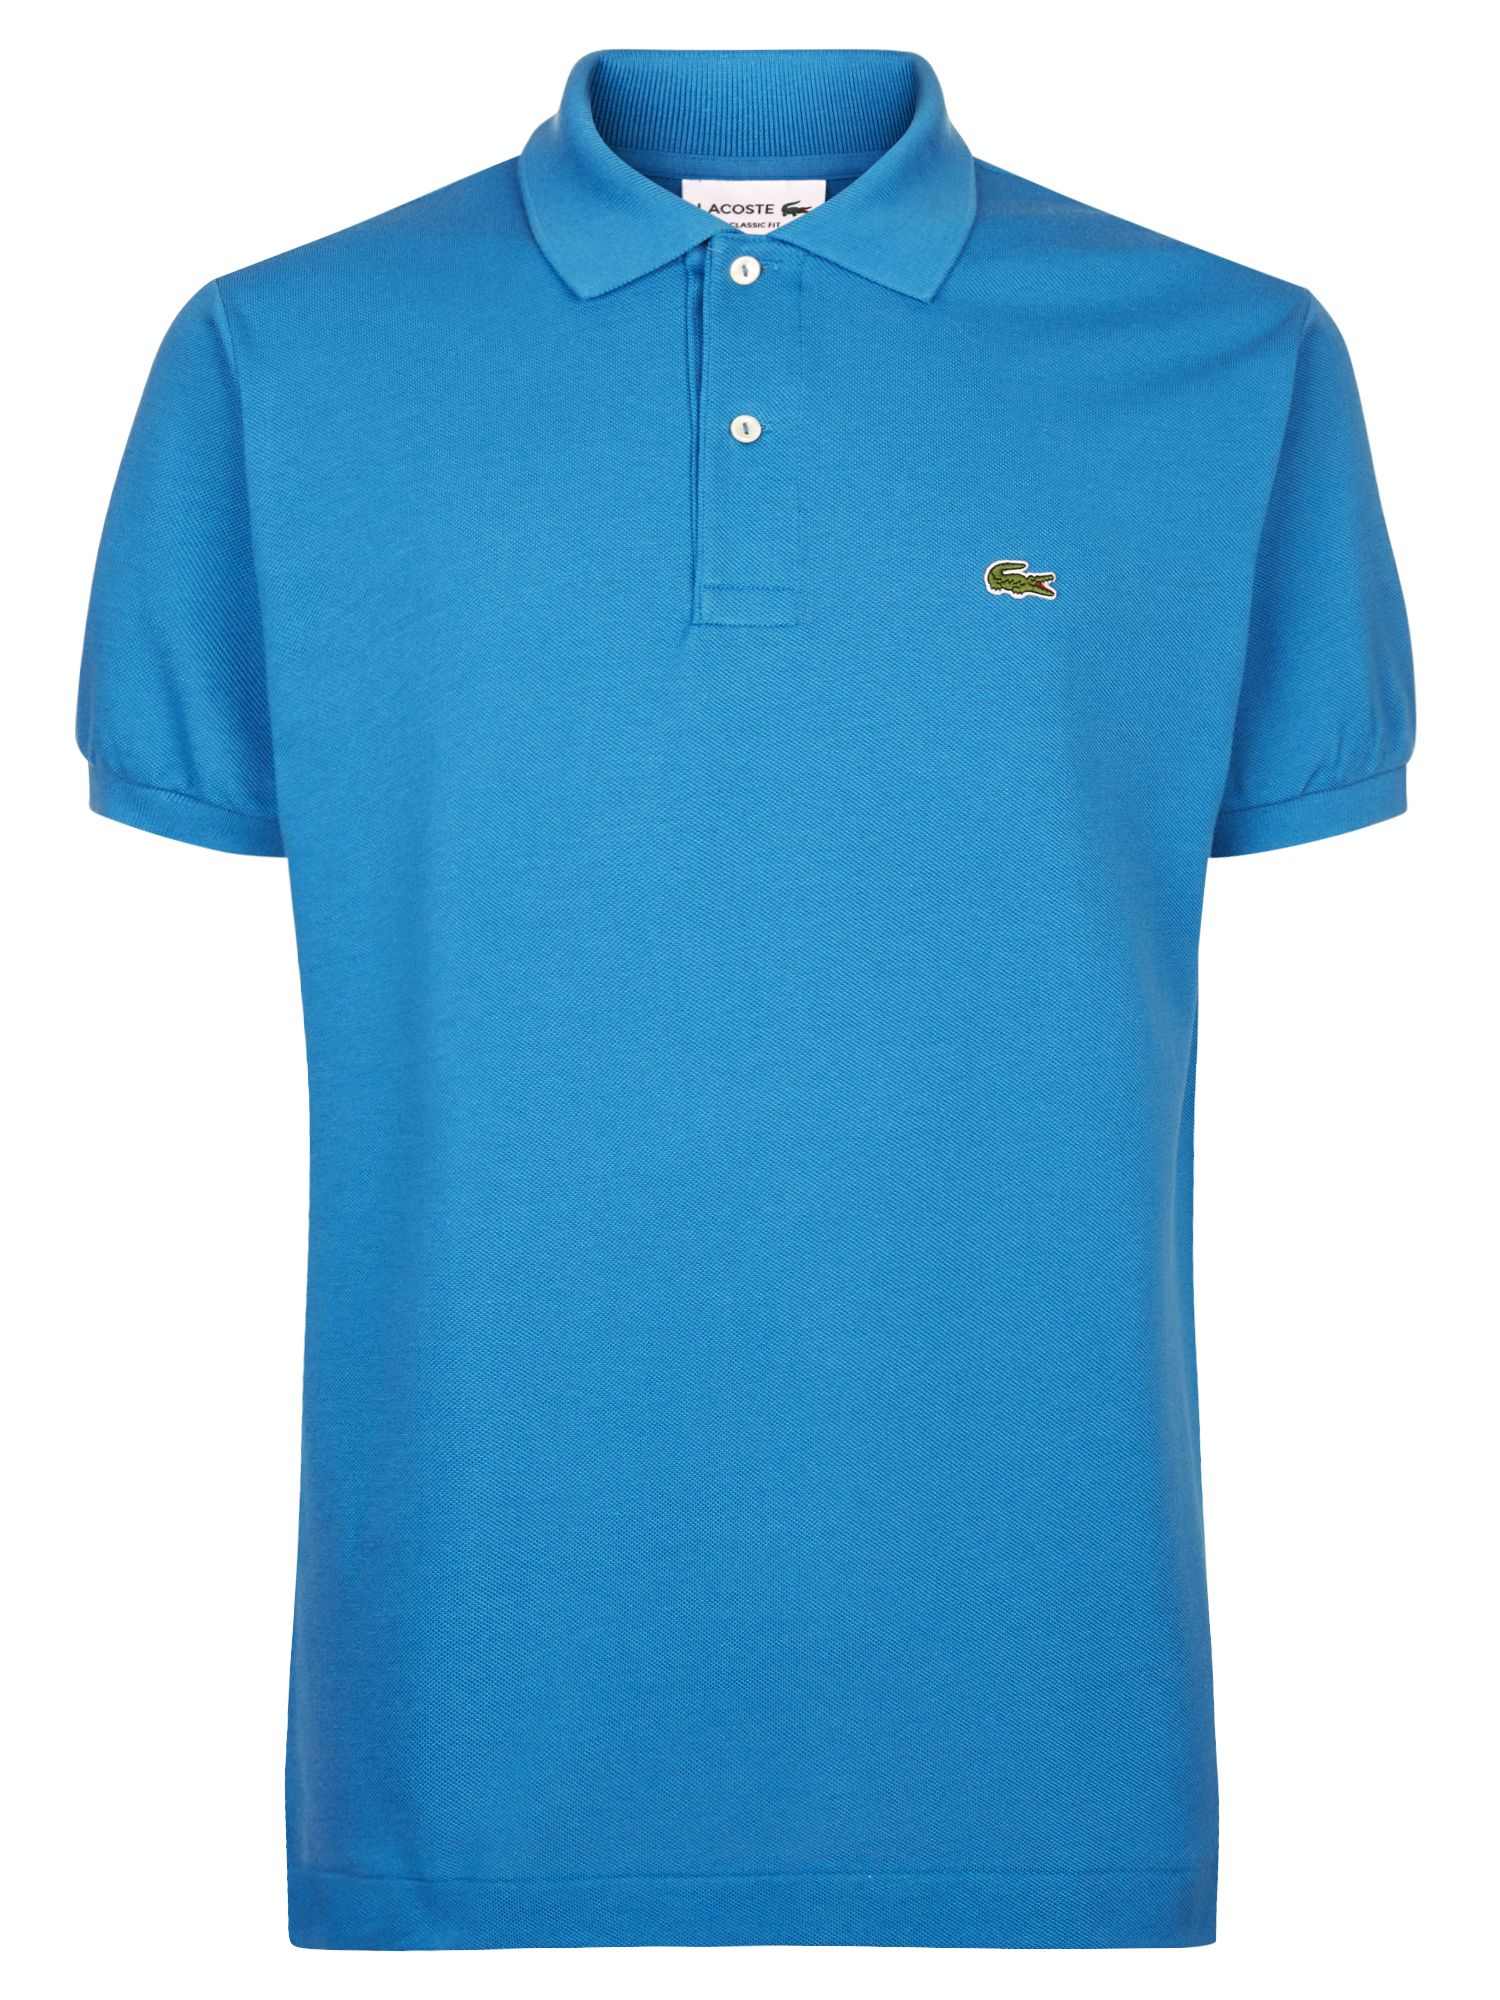 Men's Lacoste Classic L.12.12 Polo, Medway